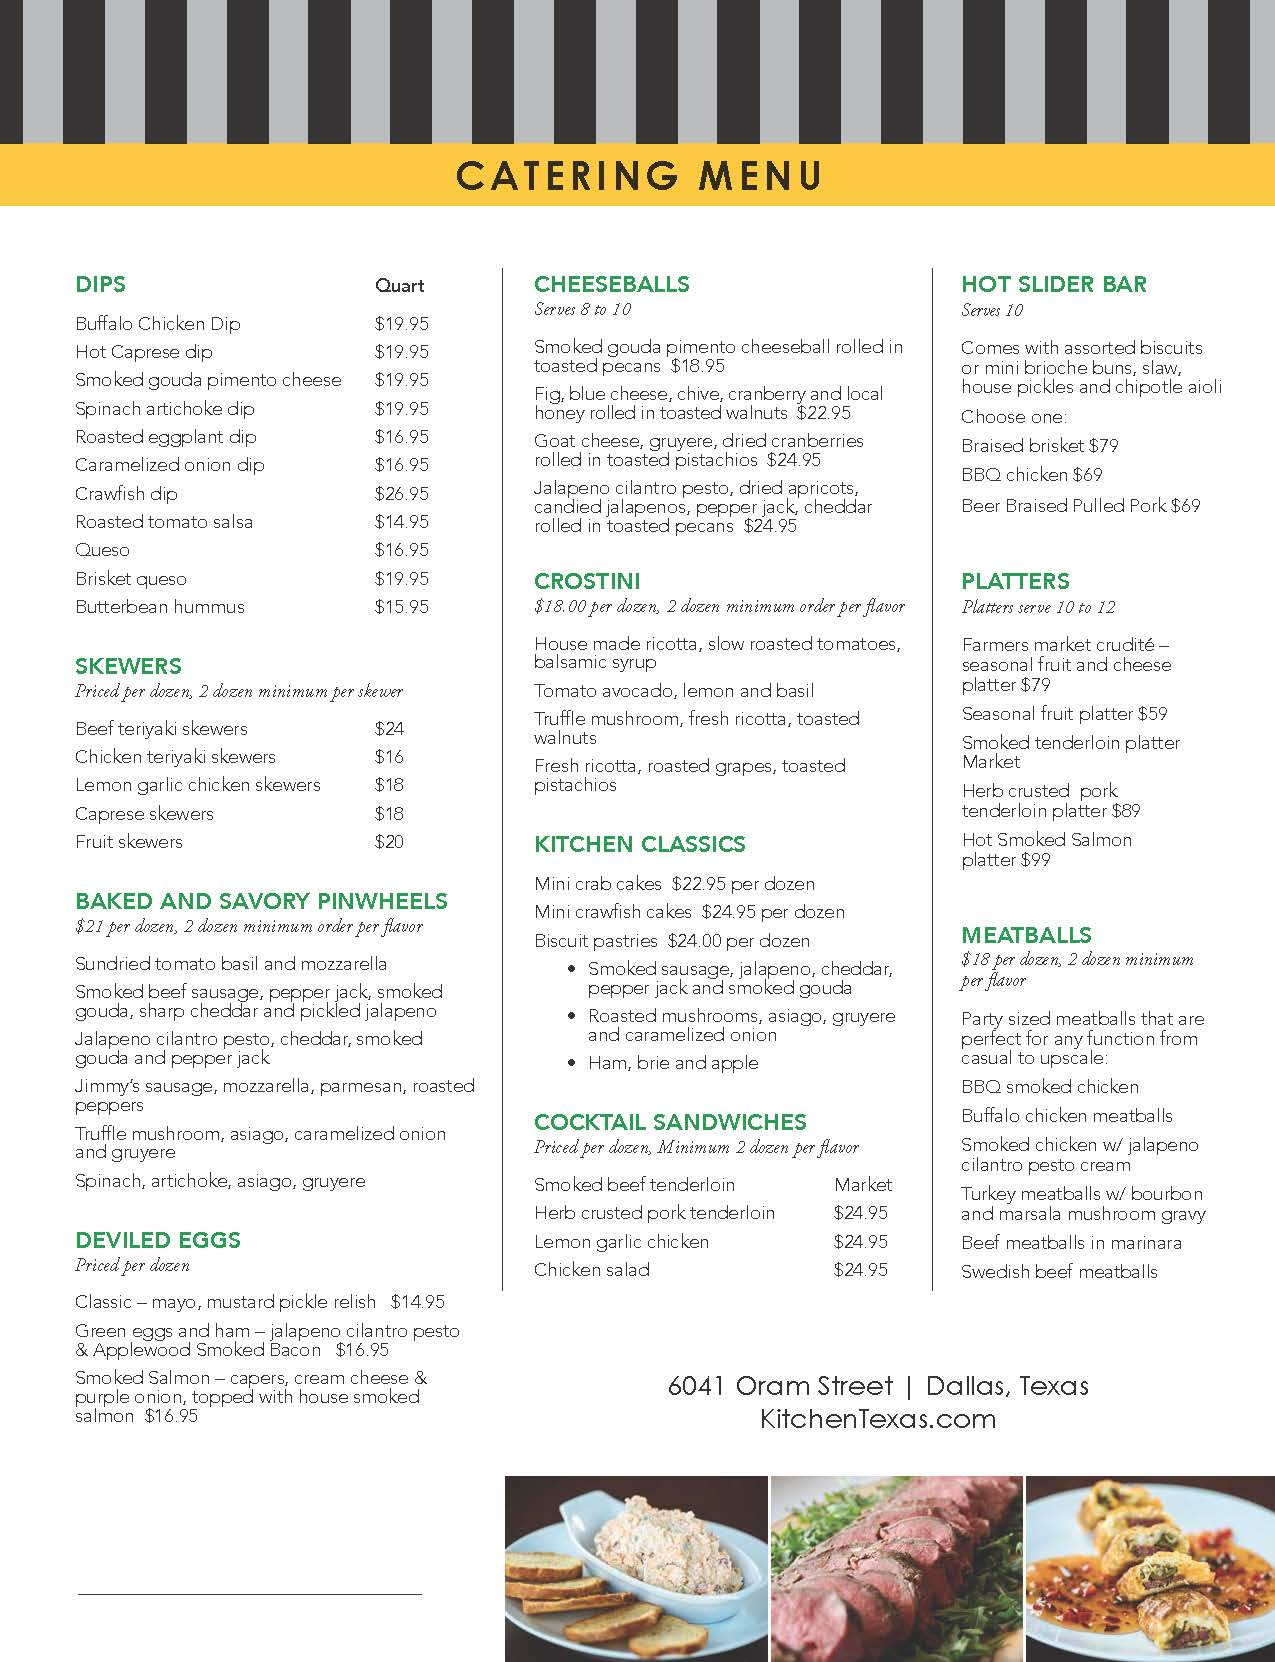 Catering Menu — Jack's Kitchen